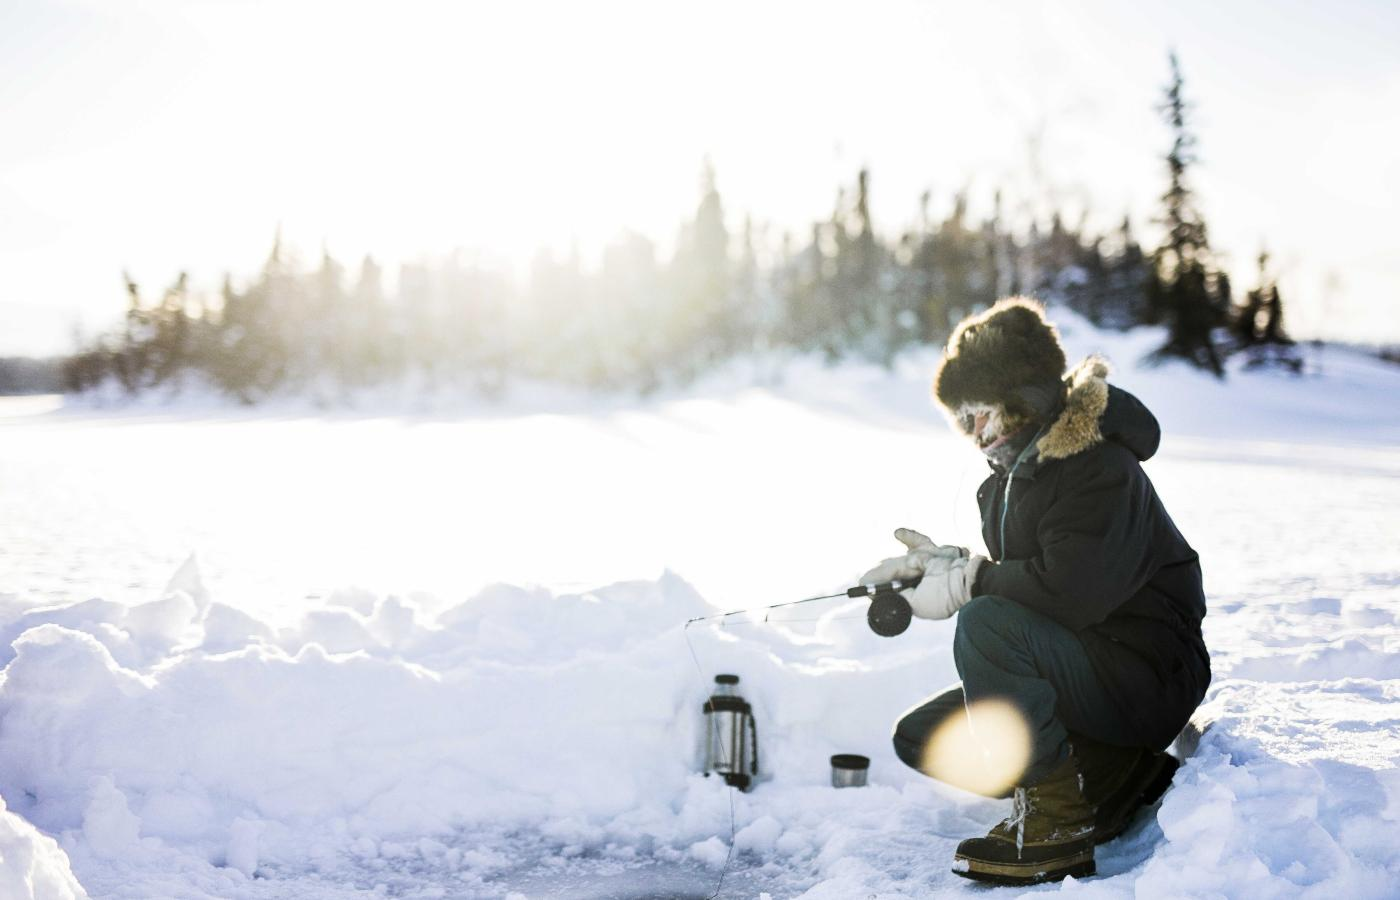 Ice fishing on Blachford Lake